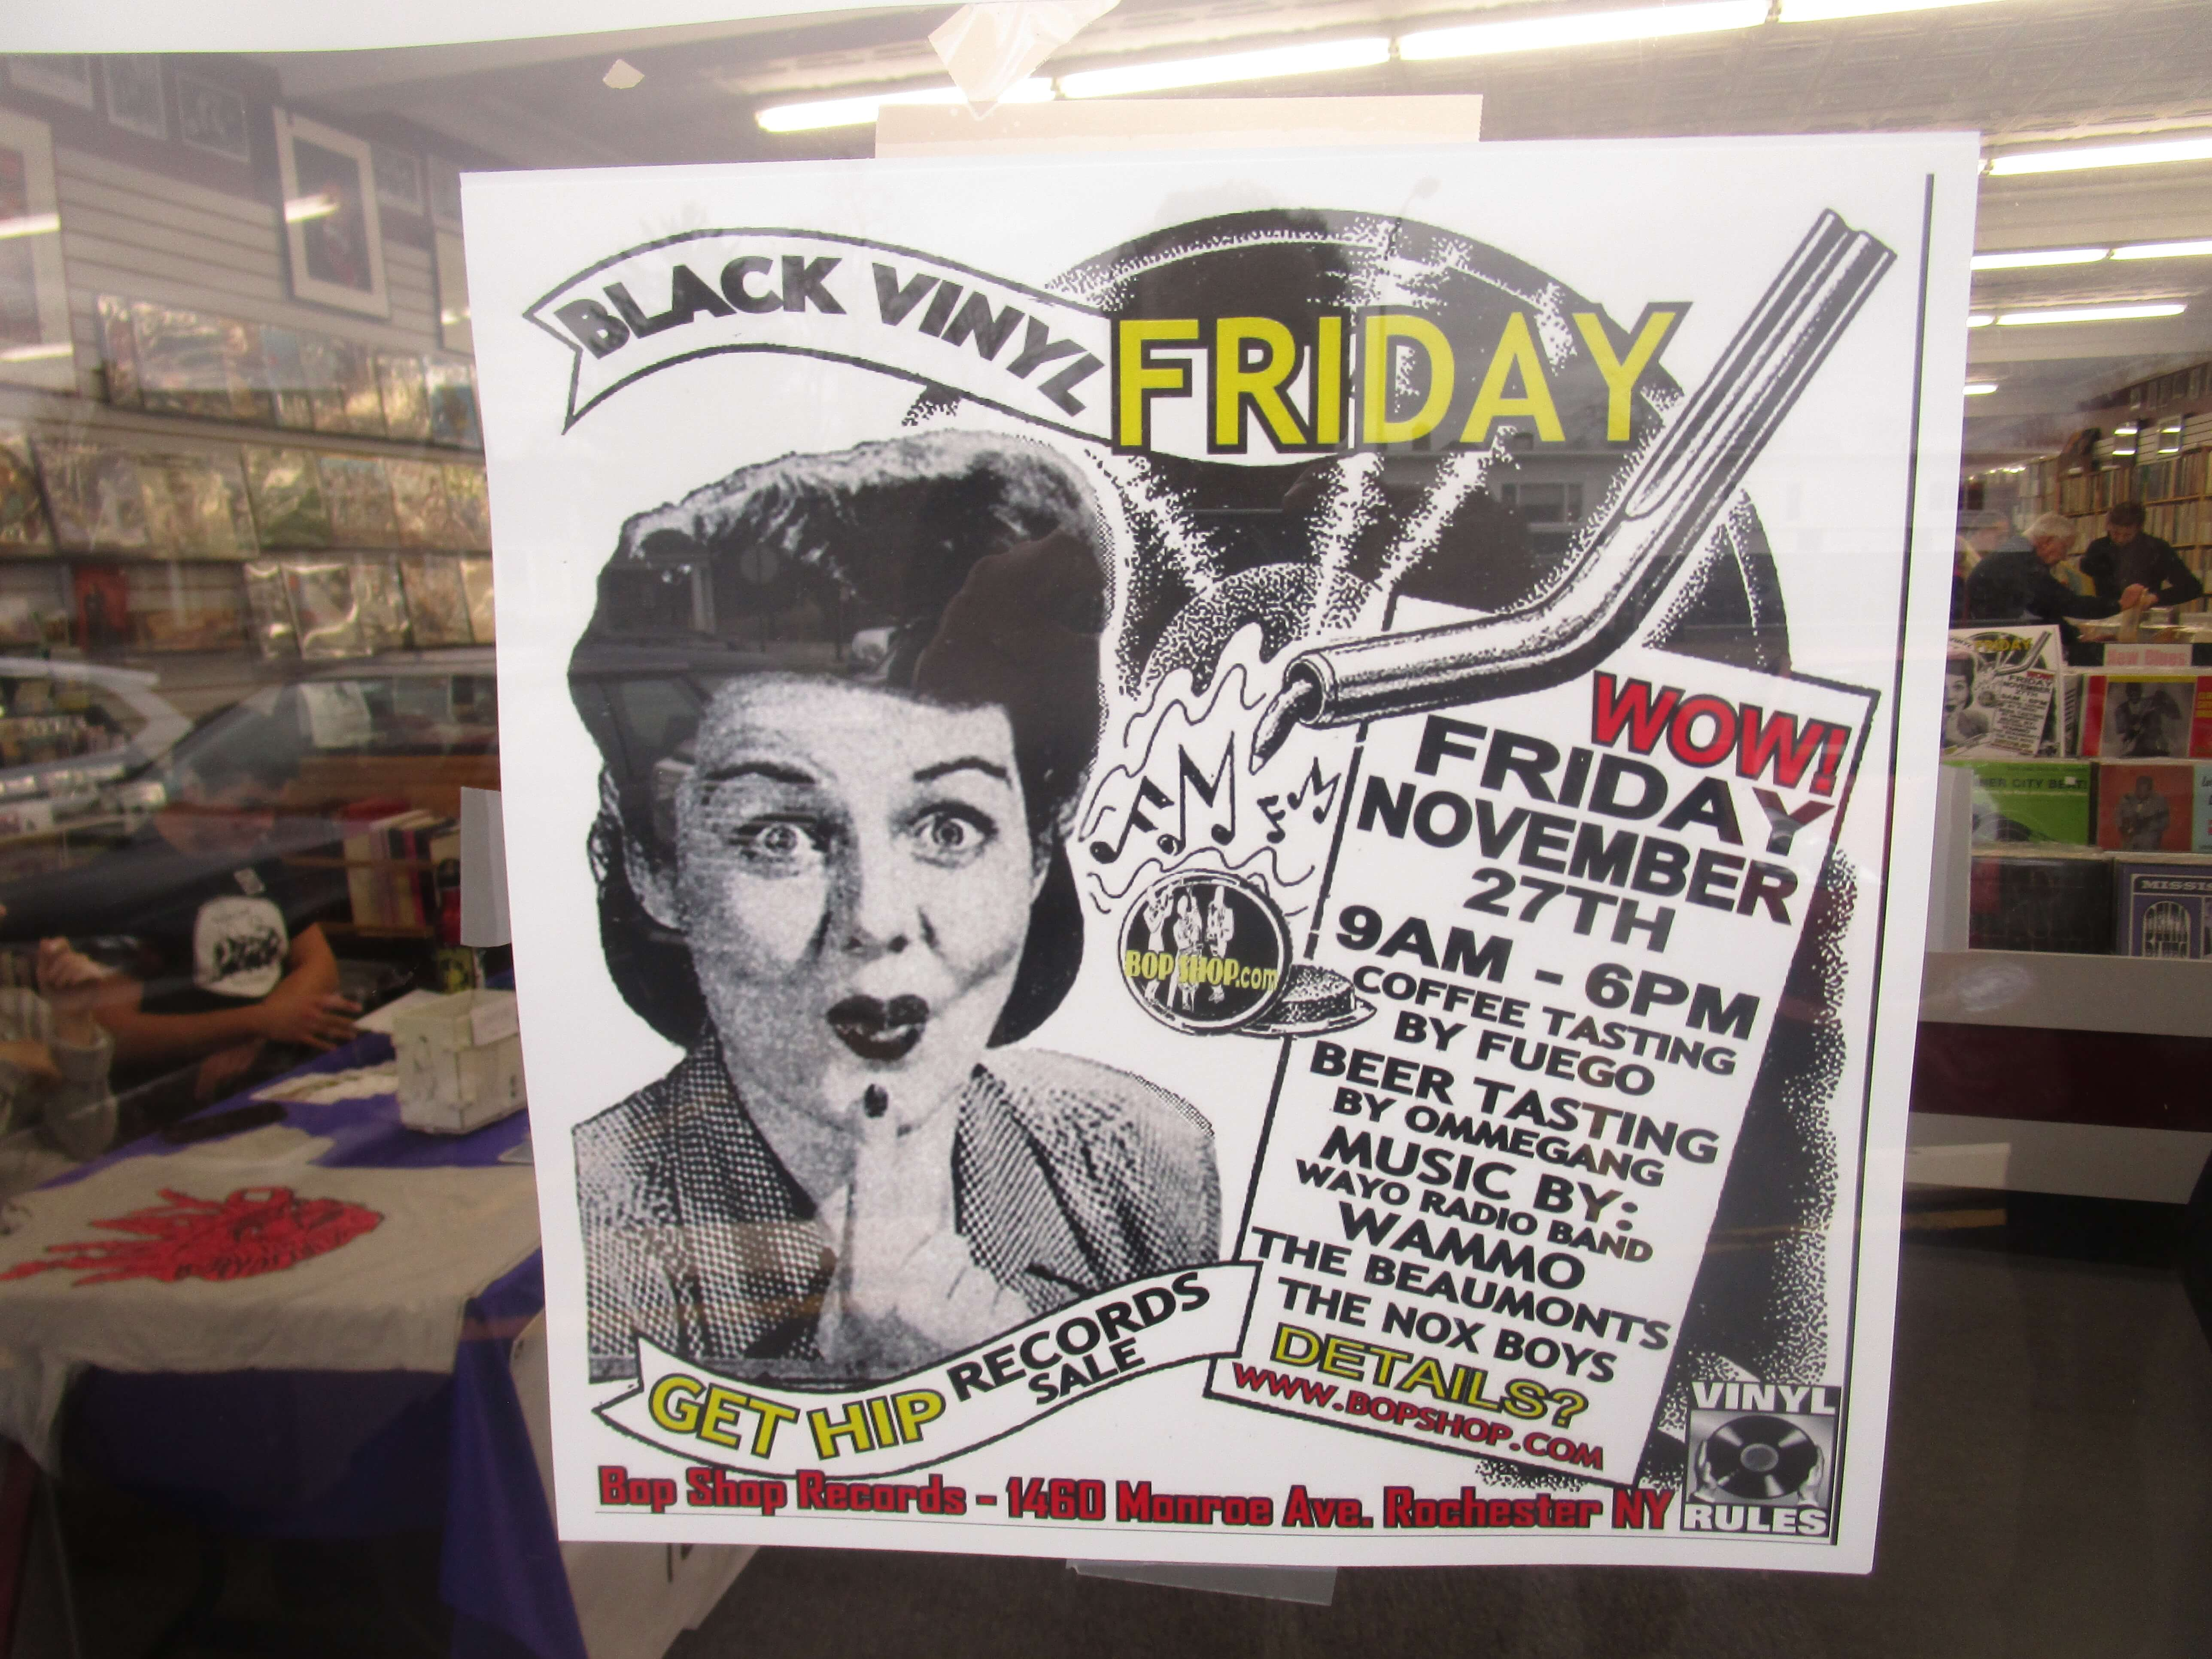 Forget EastplaceMarketview when you can Get Hip at Black Vinyl ...